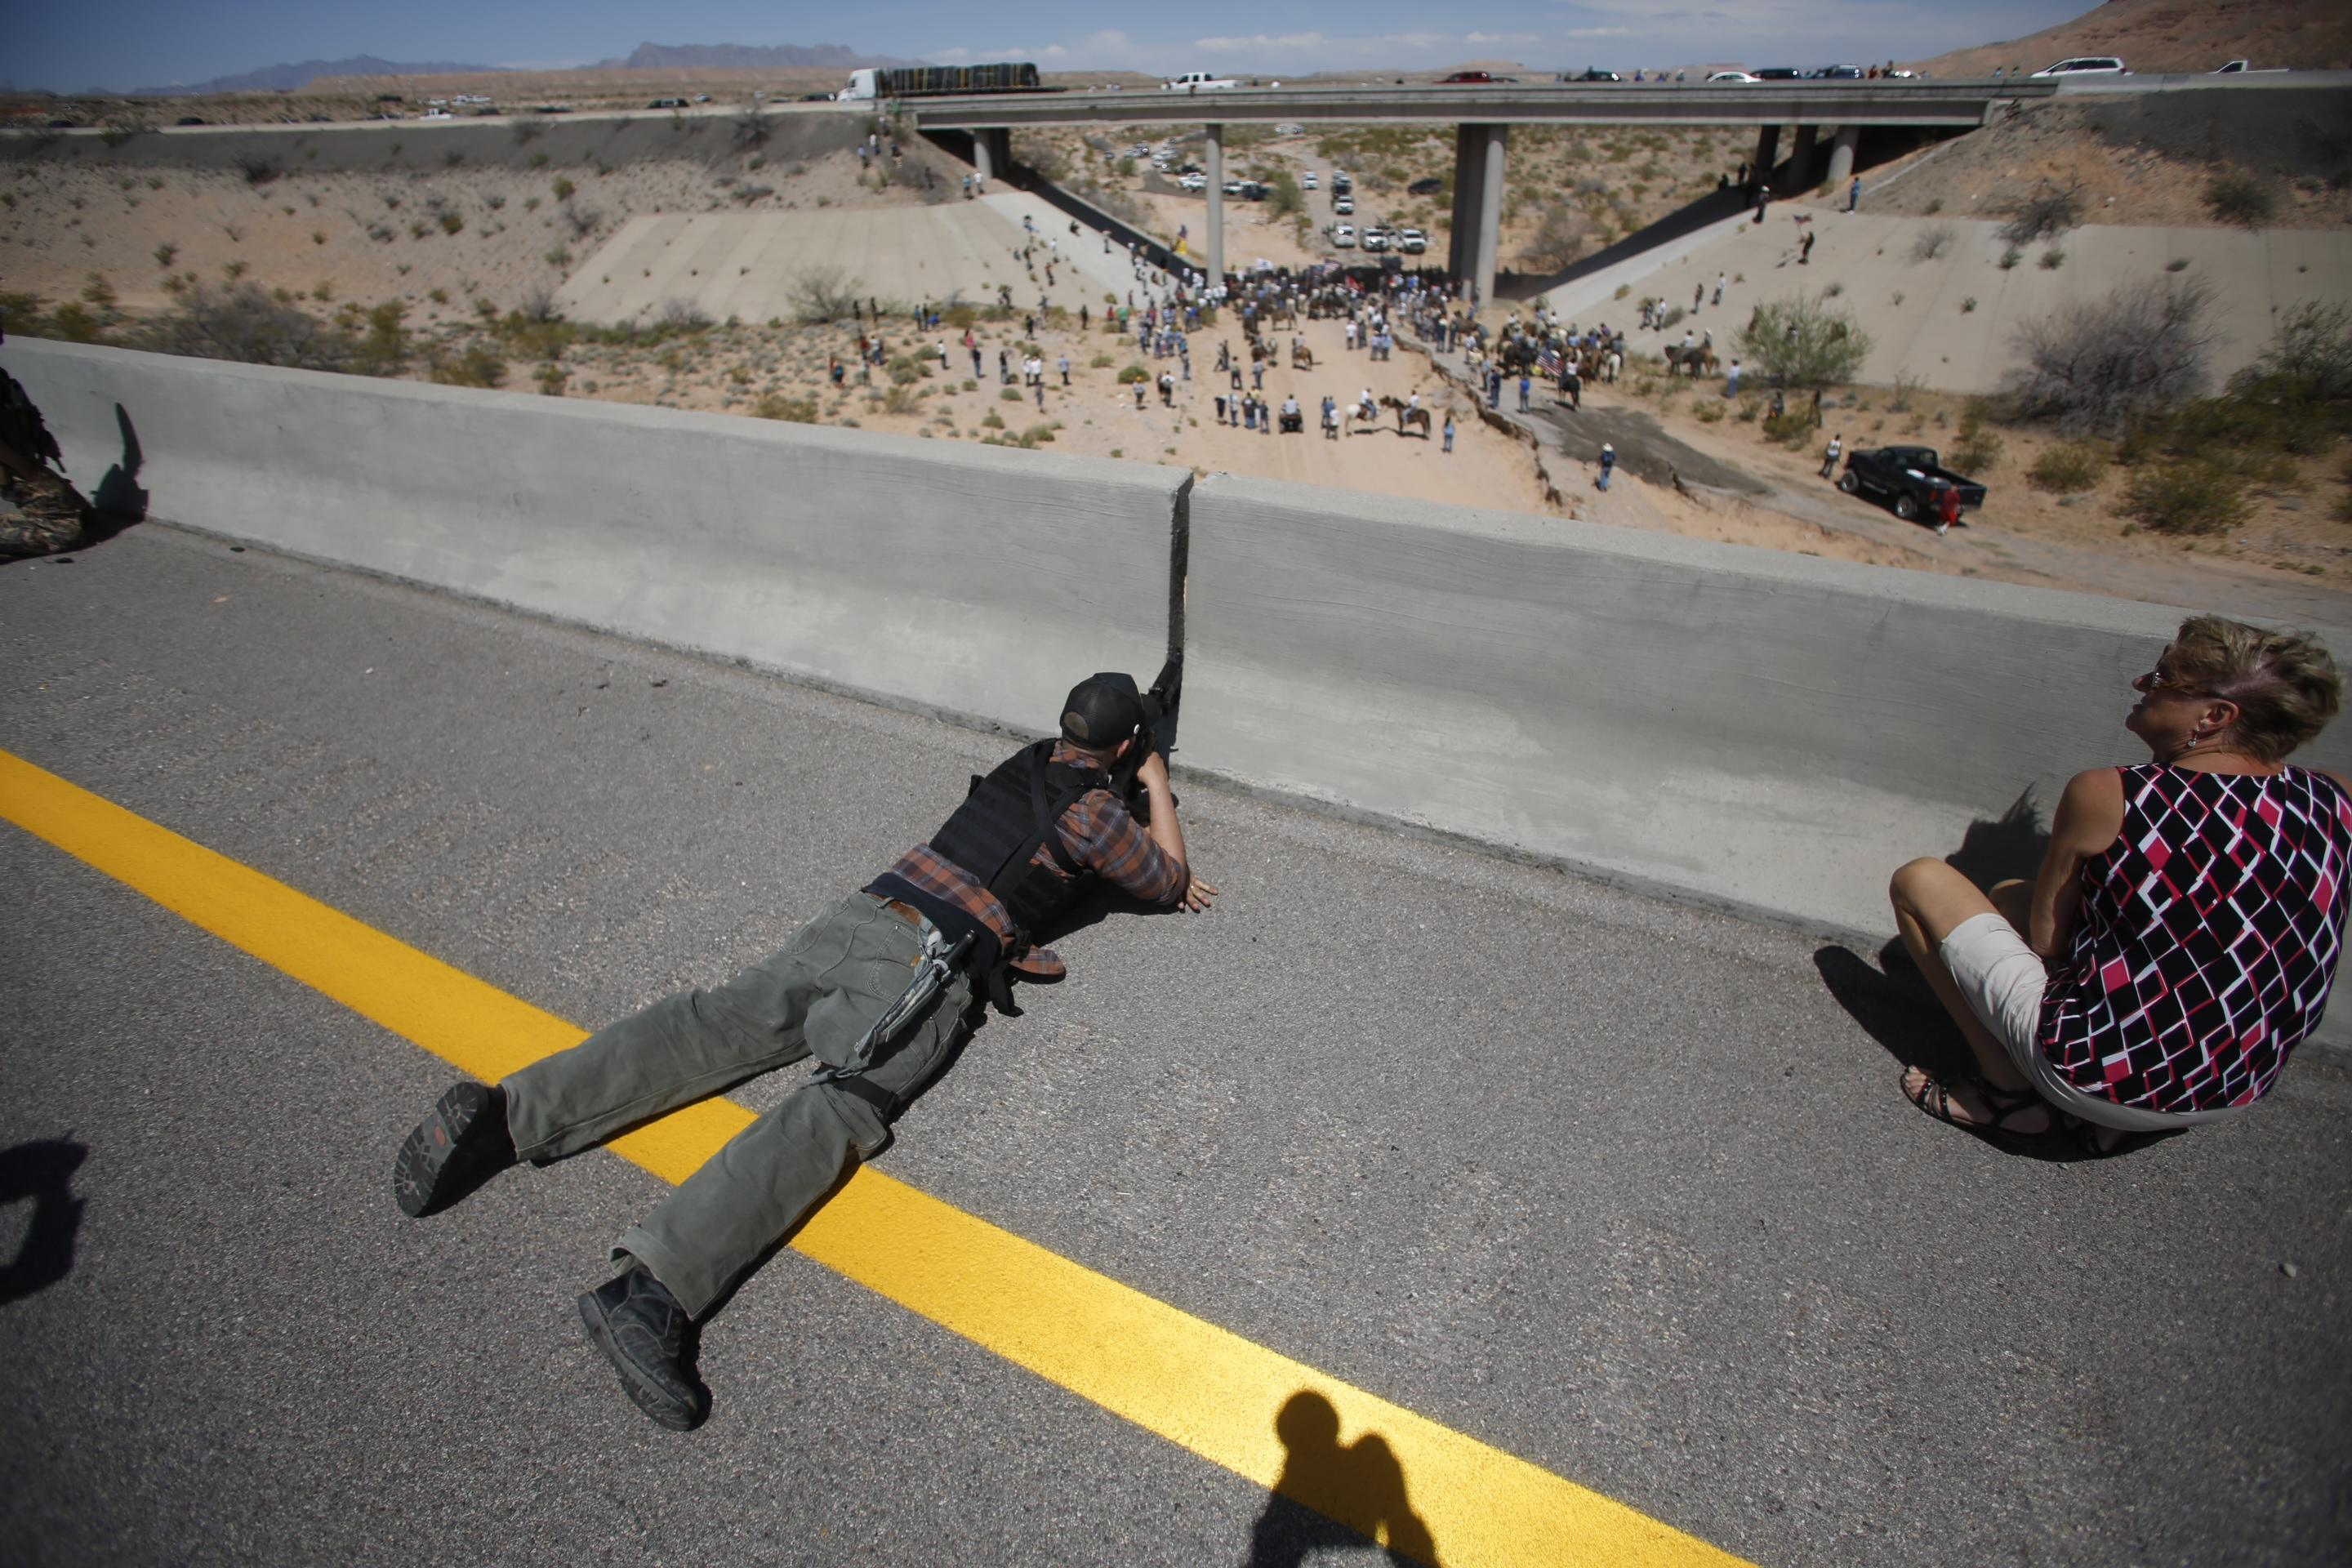 Episode 280: The Story of the Bundy Ranch Standoff